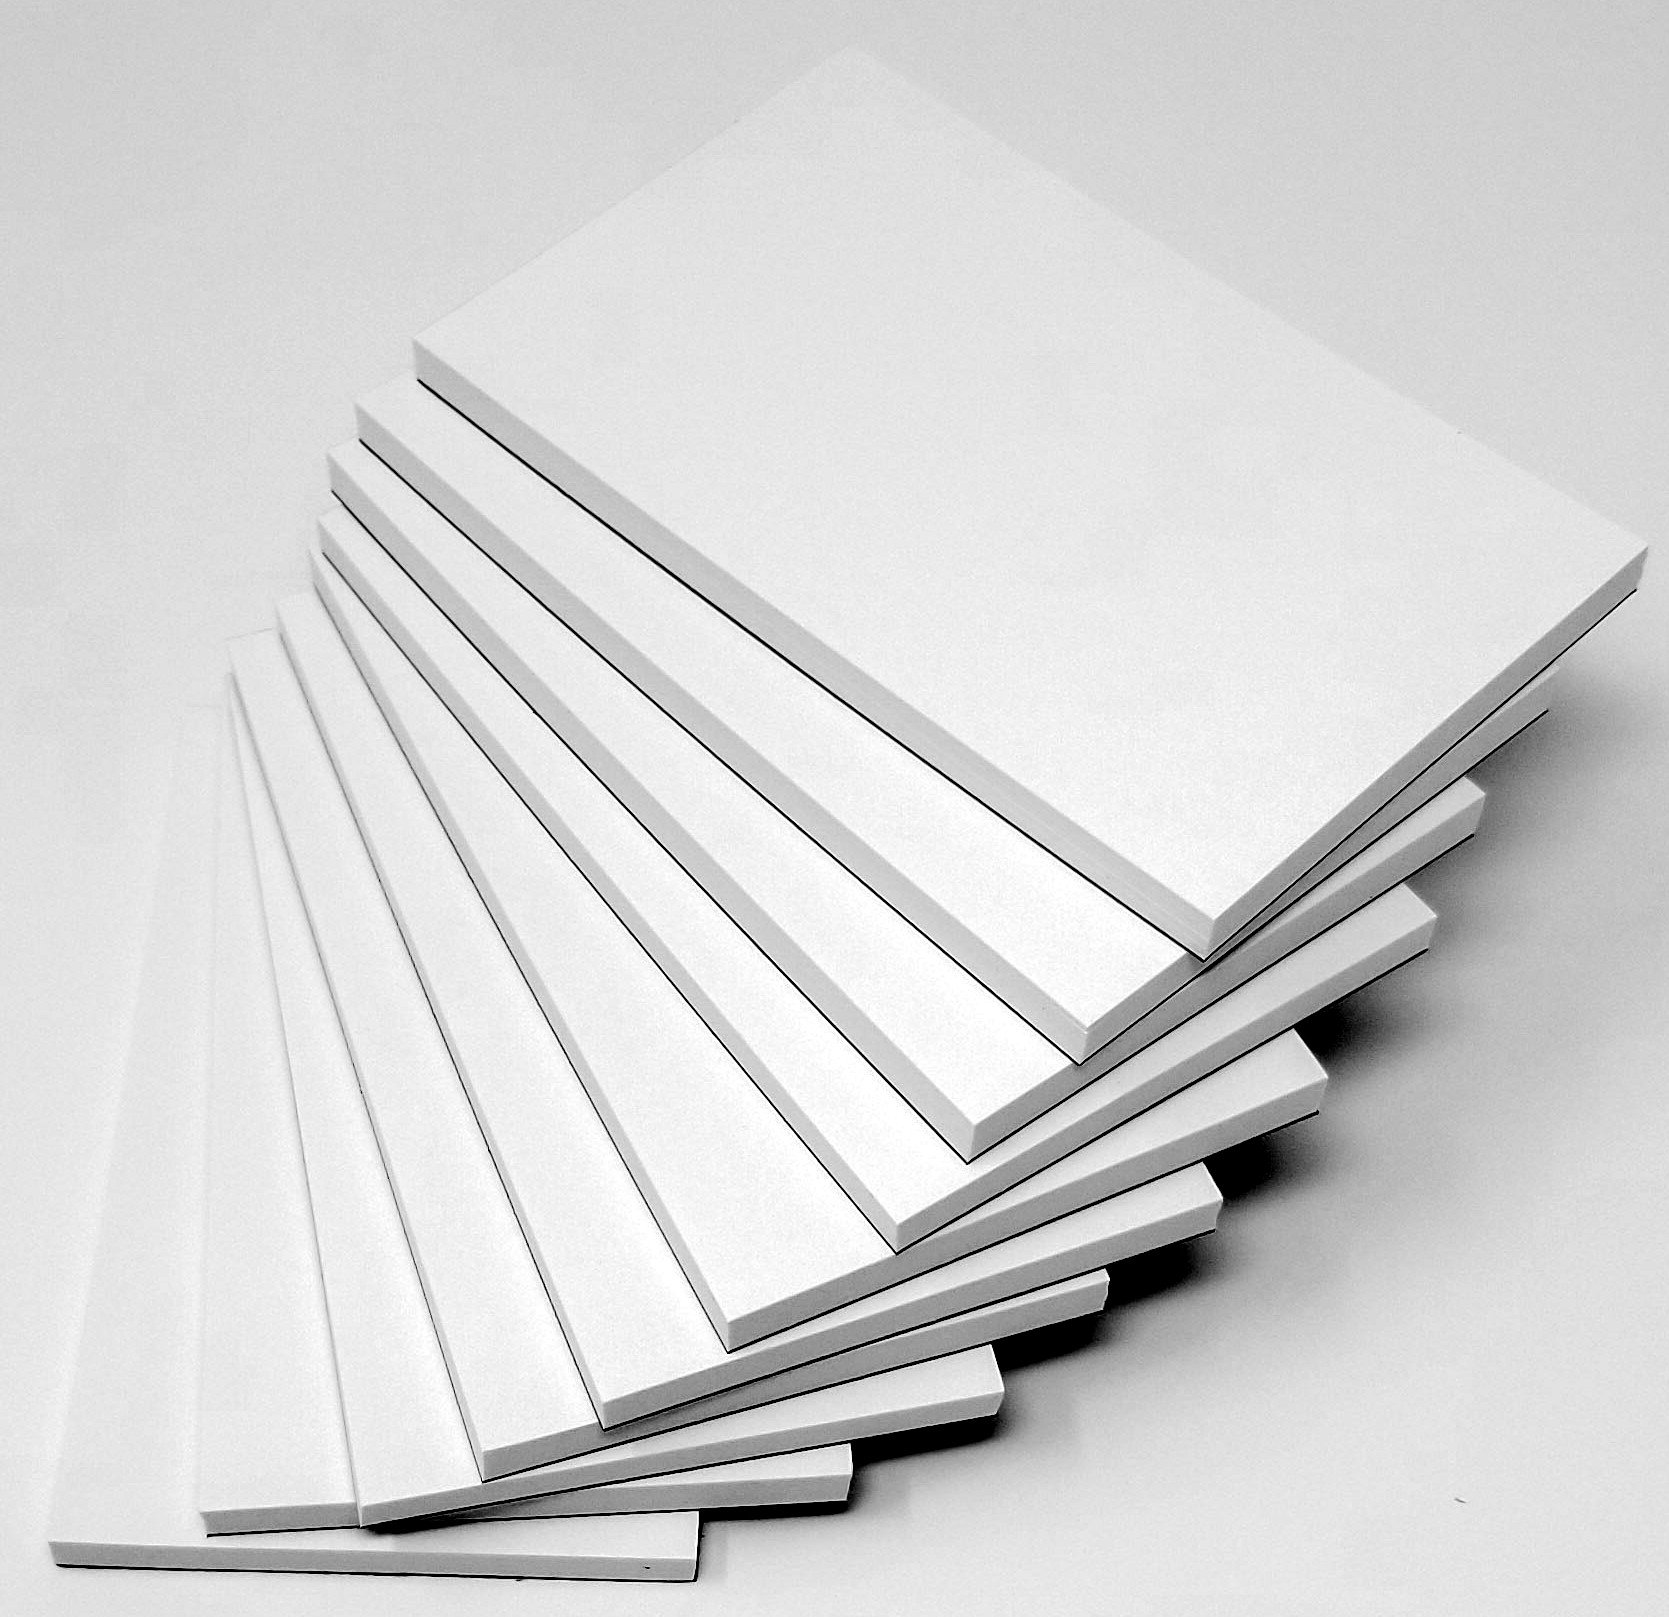 Note Pads-Memo Pads- Scratch pads-Writing pads 10 pads 50 per pad 2.75 x 5